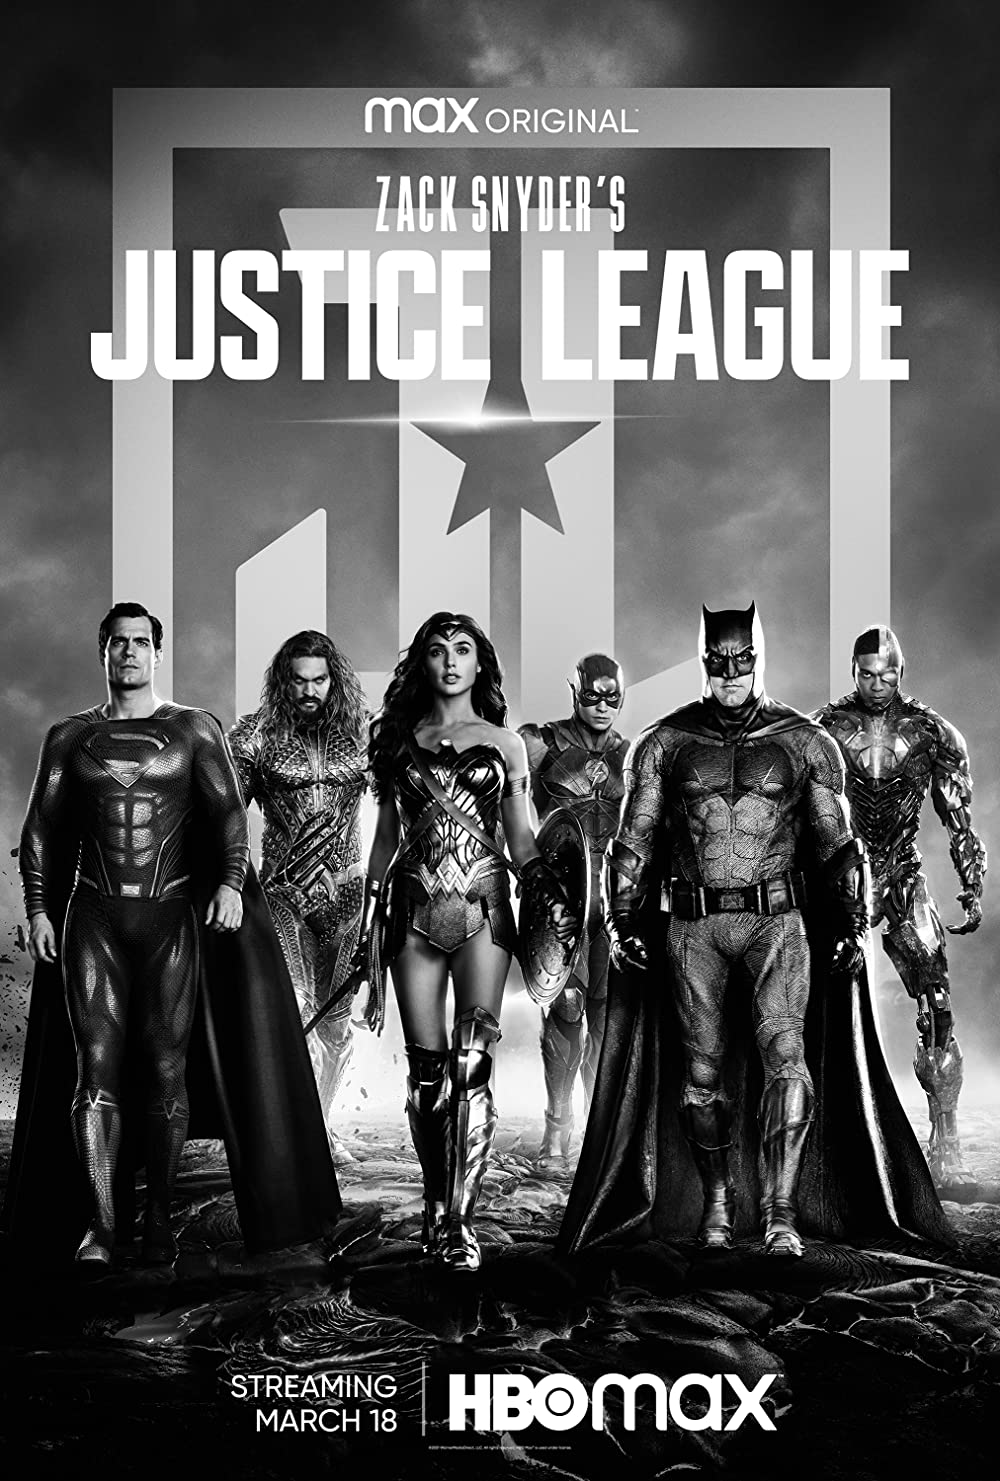 Zack Snyder's Justice League poster